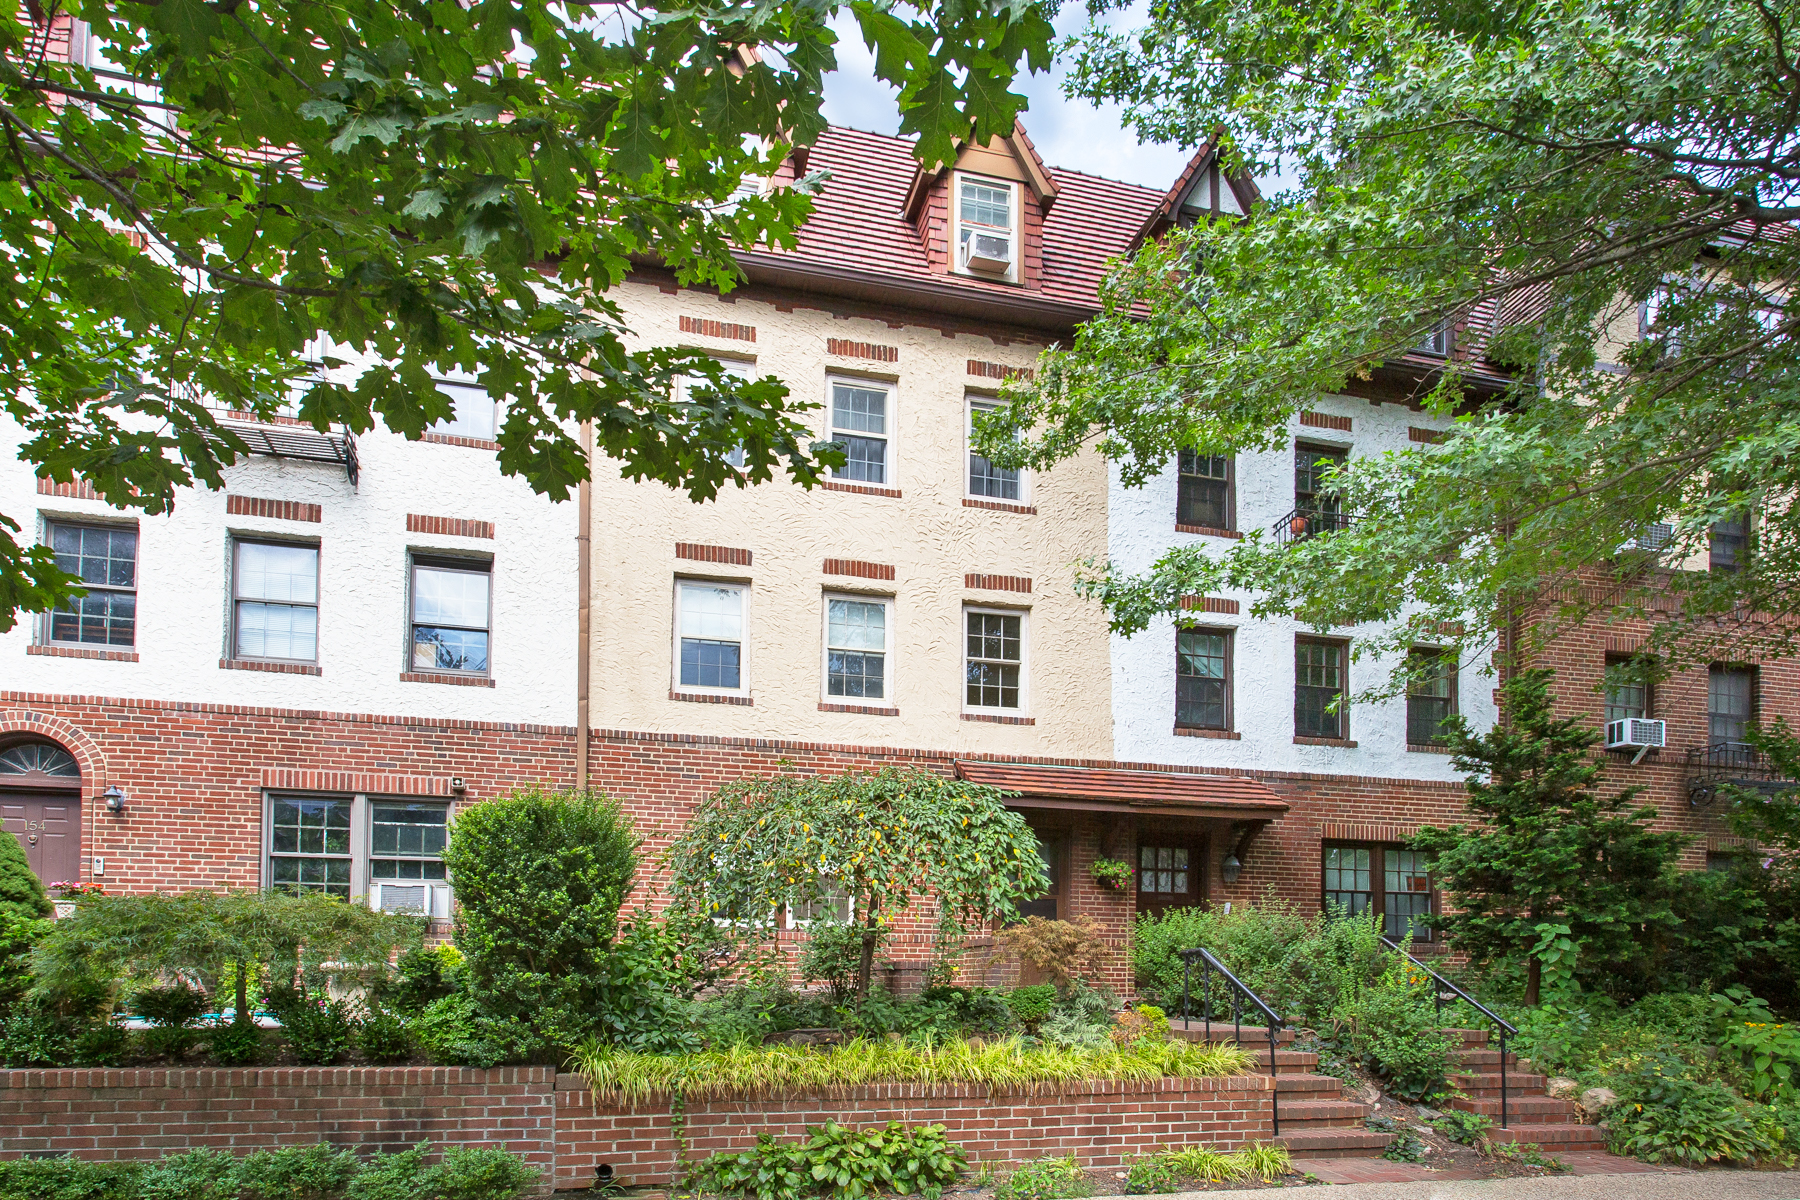 """Multi-Family Homes for Sale at """"FOREST HILLS GARDENS GOLD COAST INVESTMENT OPPORTUNITY"""" 156 Burns Street, Forest Hills Gardens, Queens, New York 11375 United States"""